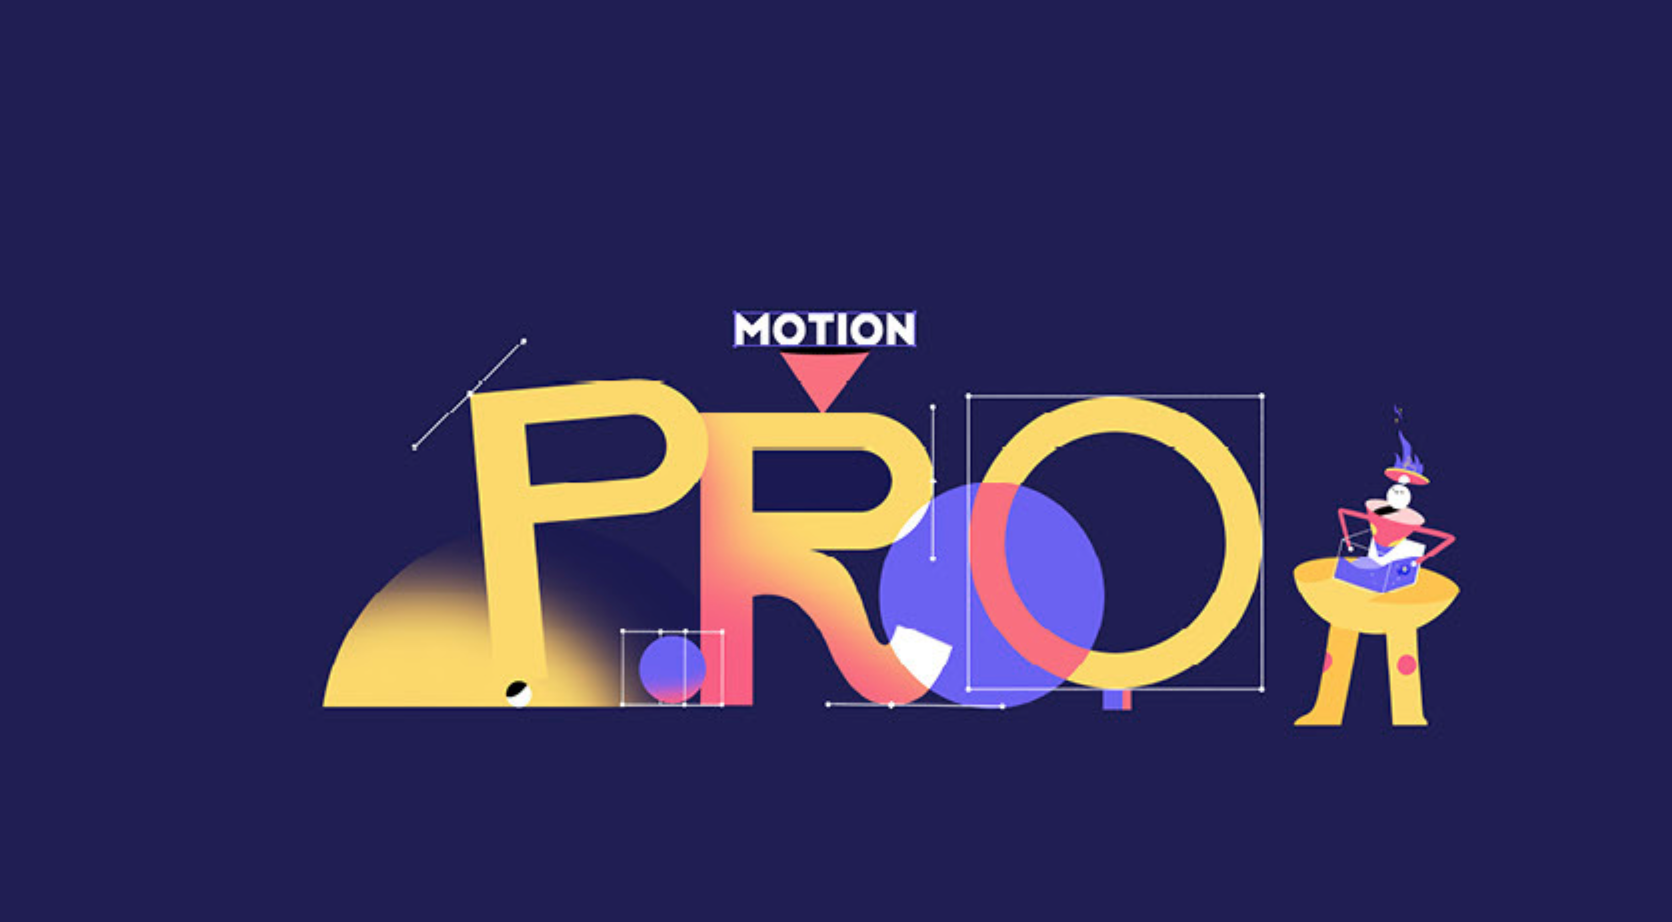 Motion Pro by Motion Bro